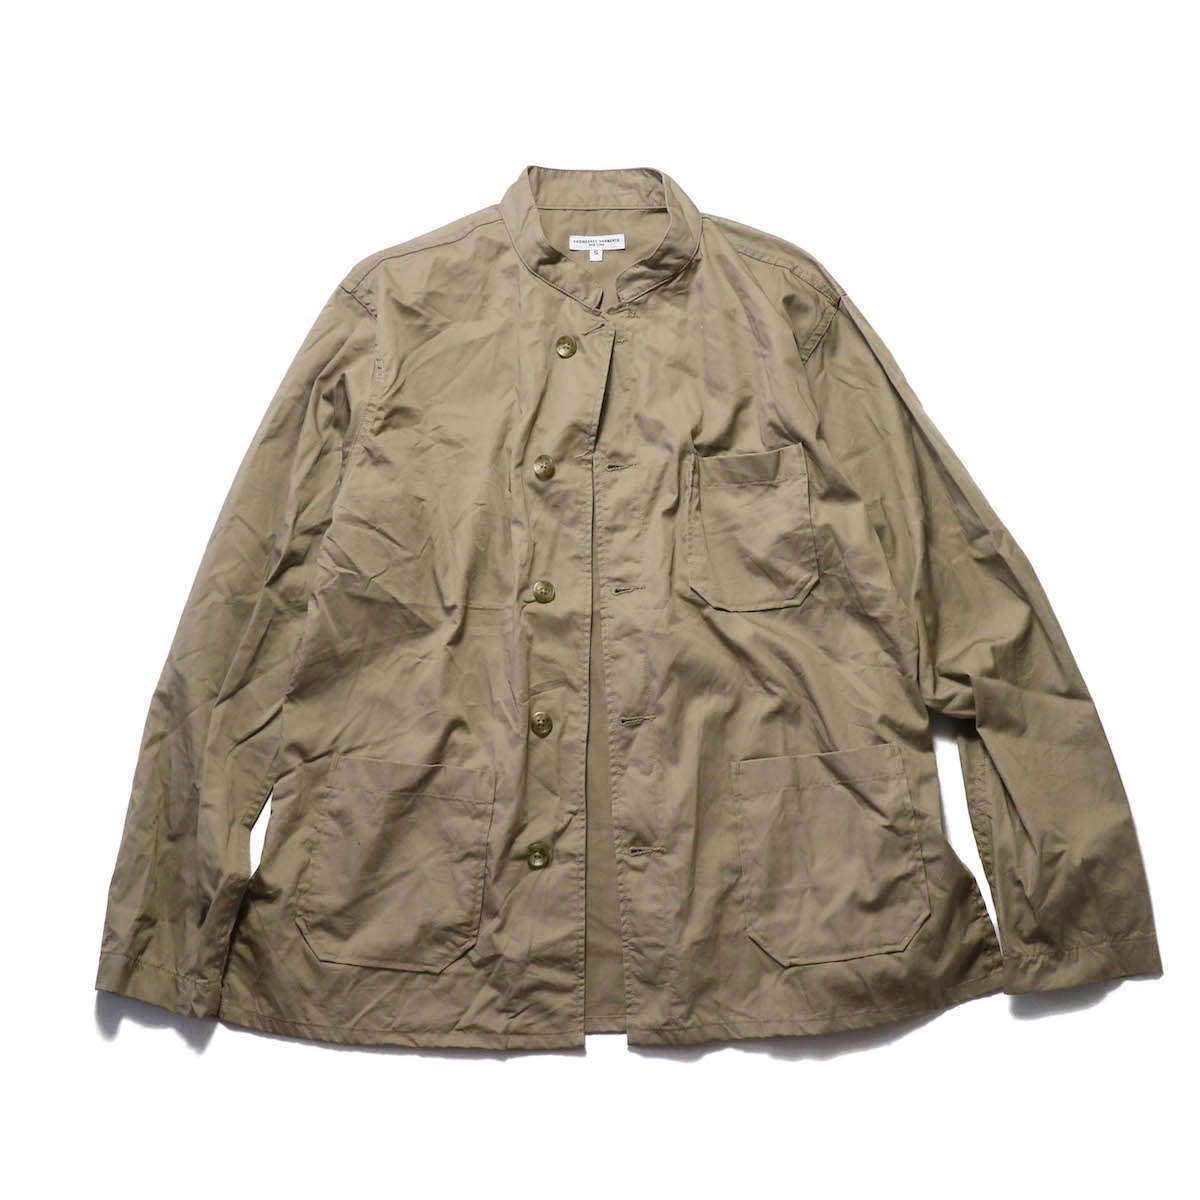 Engineered Garments / Dayton Shirt -High Count Twill -Khaki